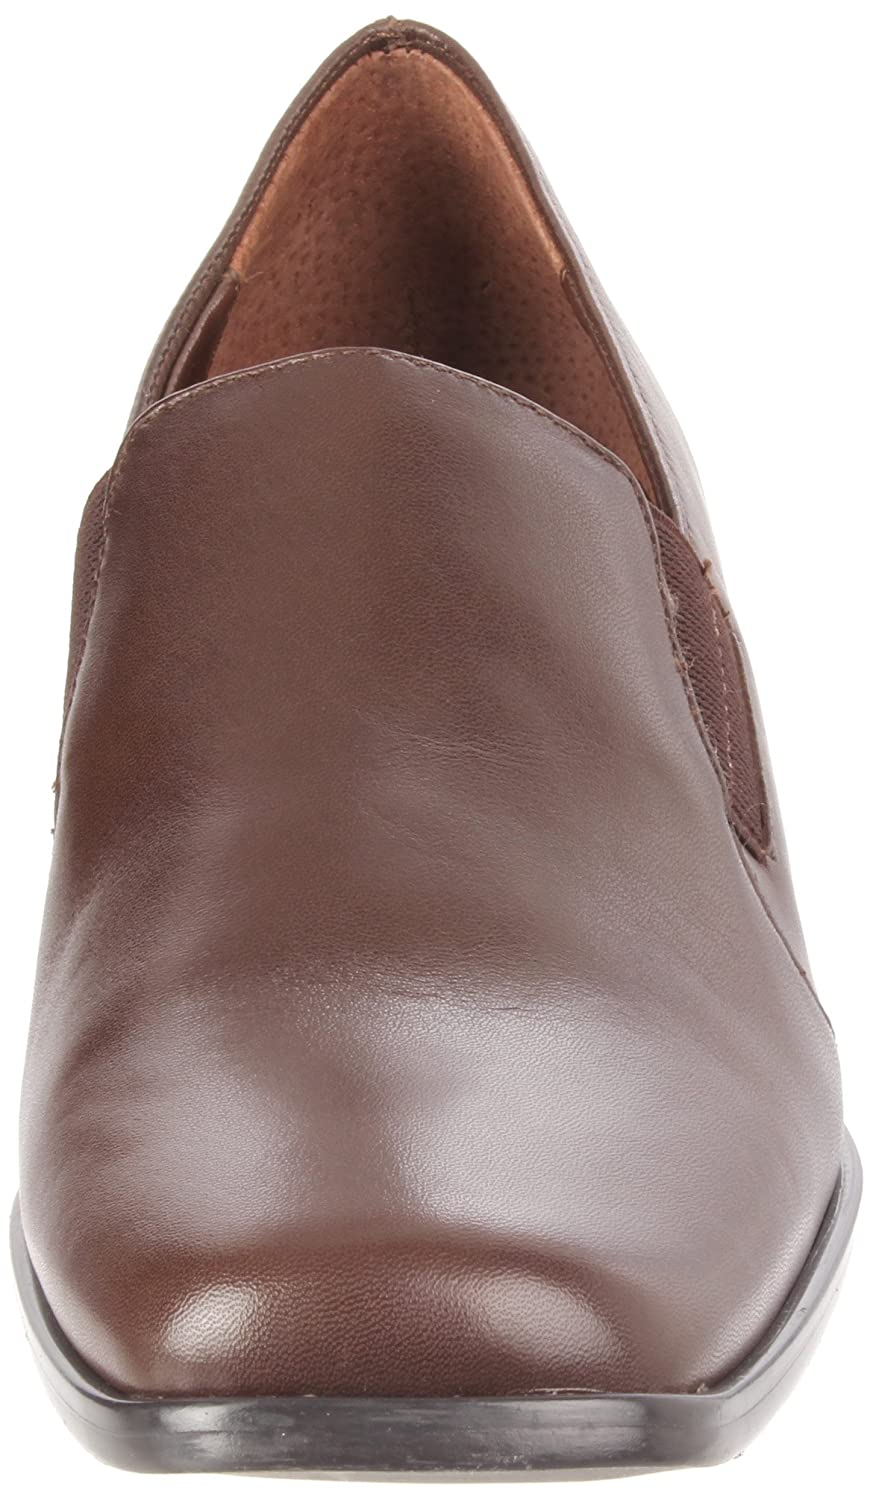 Trotters Women's Ash Loafer B000CBX5KE 9 W US|Fudge